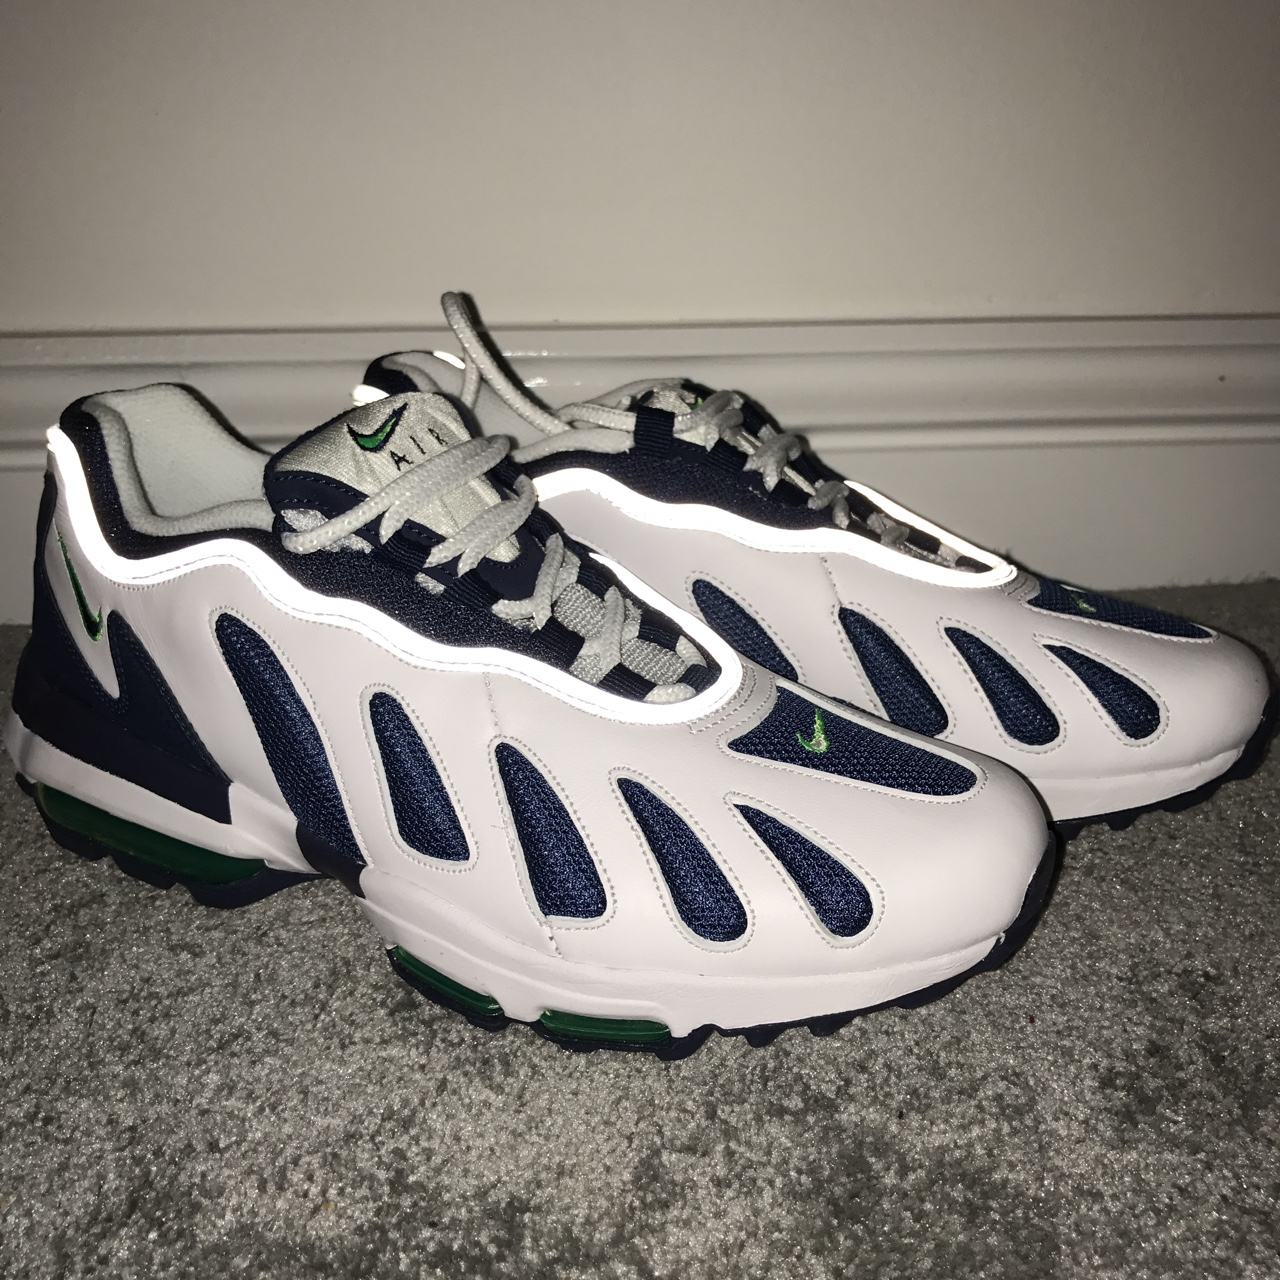 bonito Nike Air Max 96 XX UK7 US8 Brand new without box gran